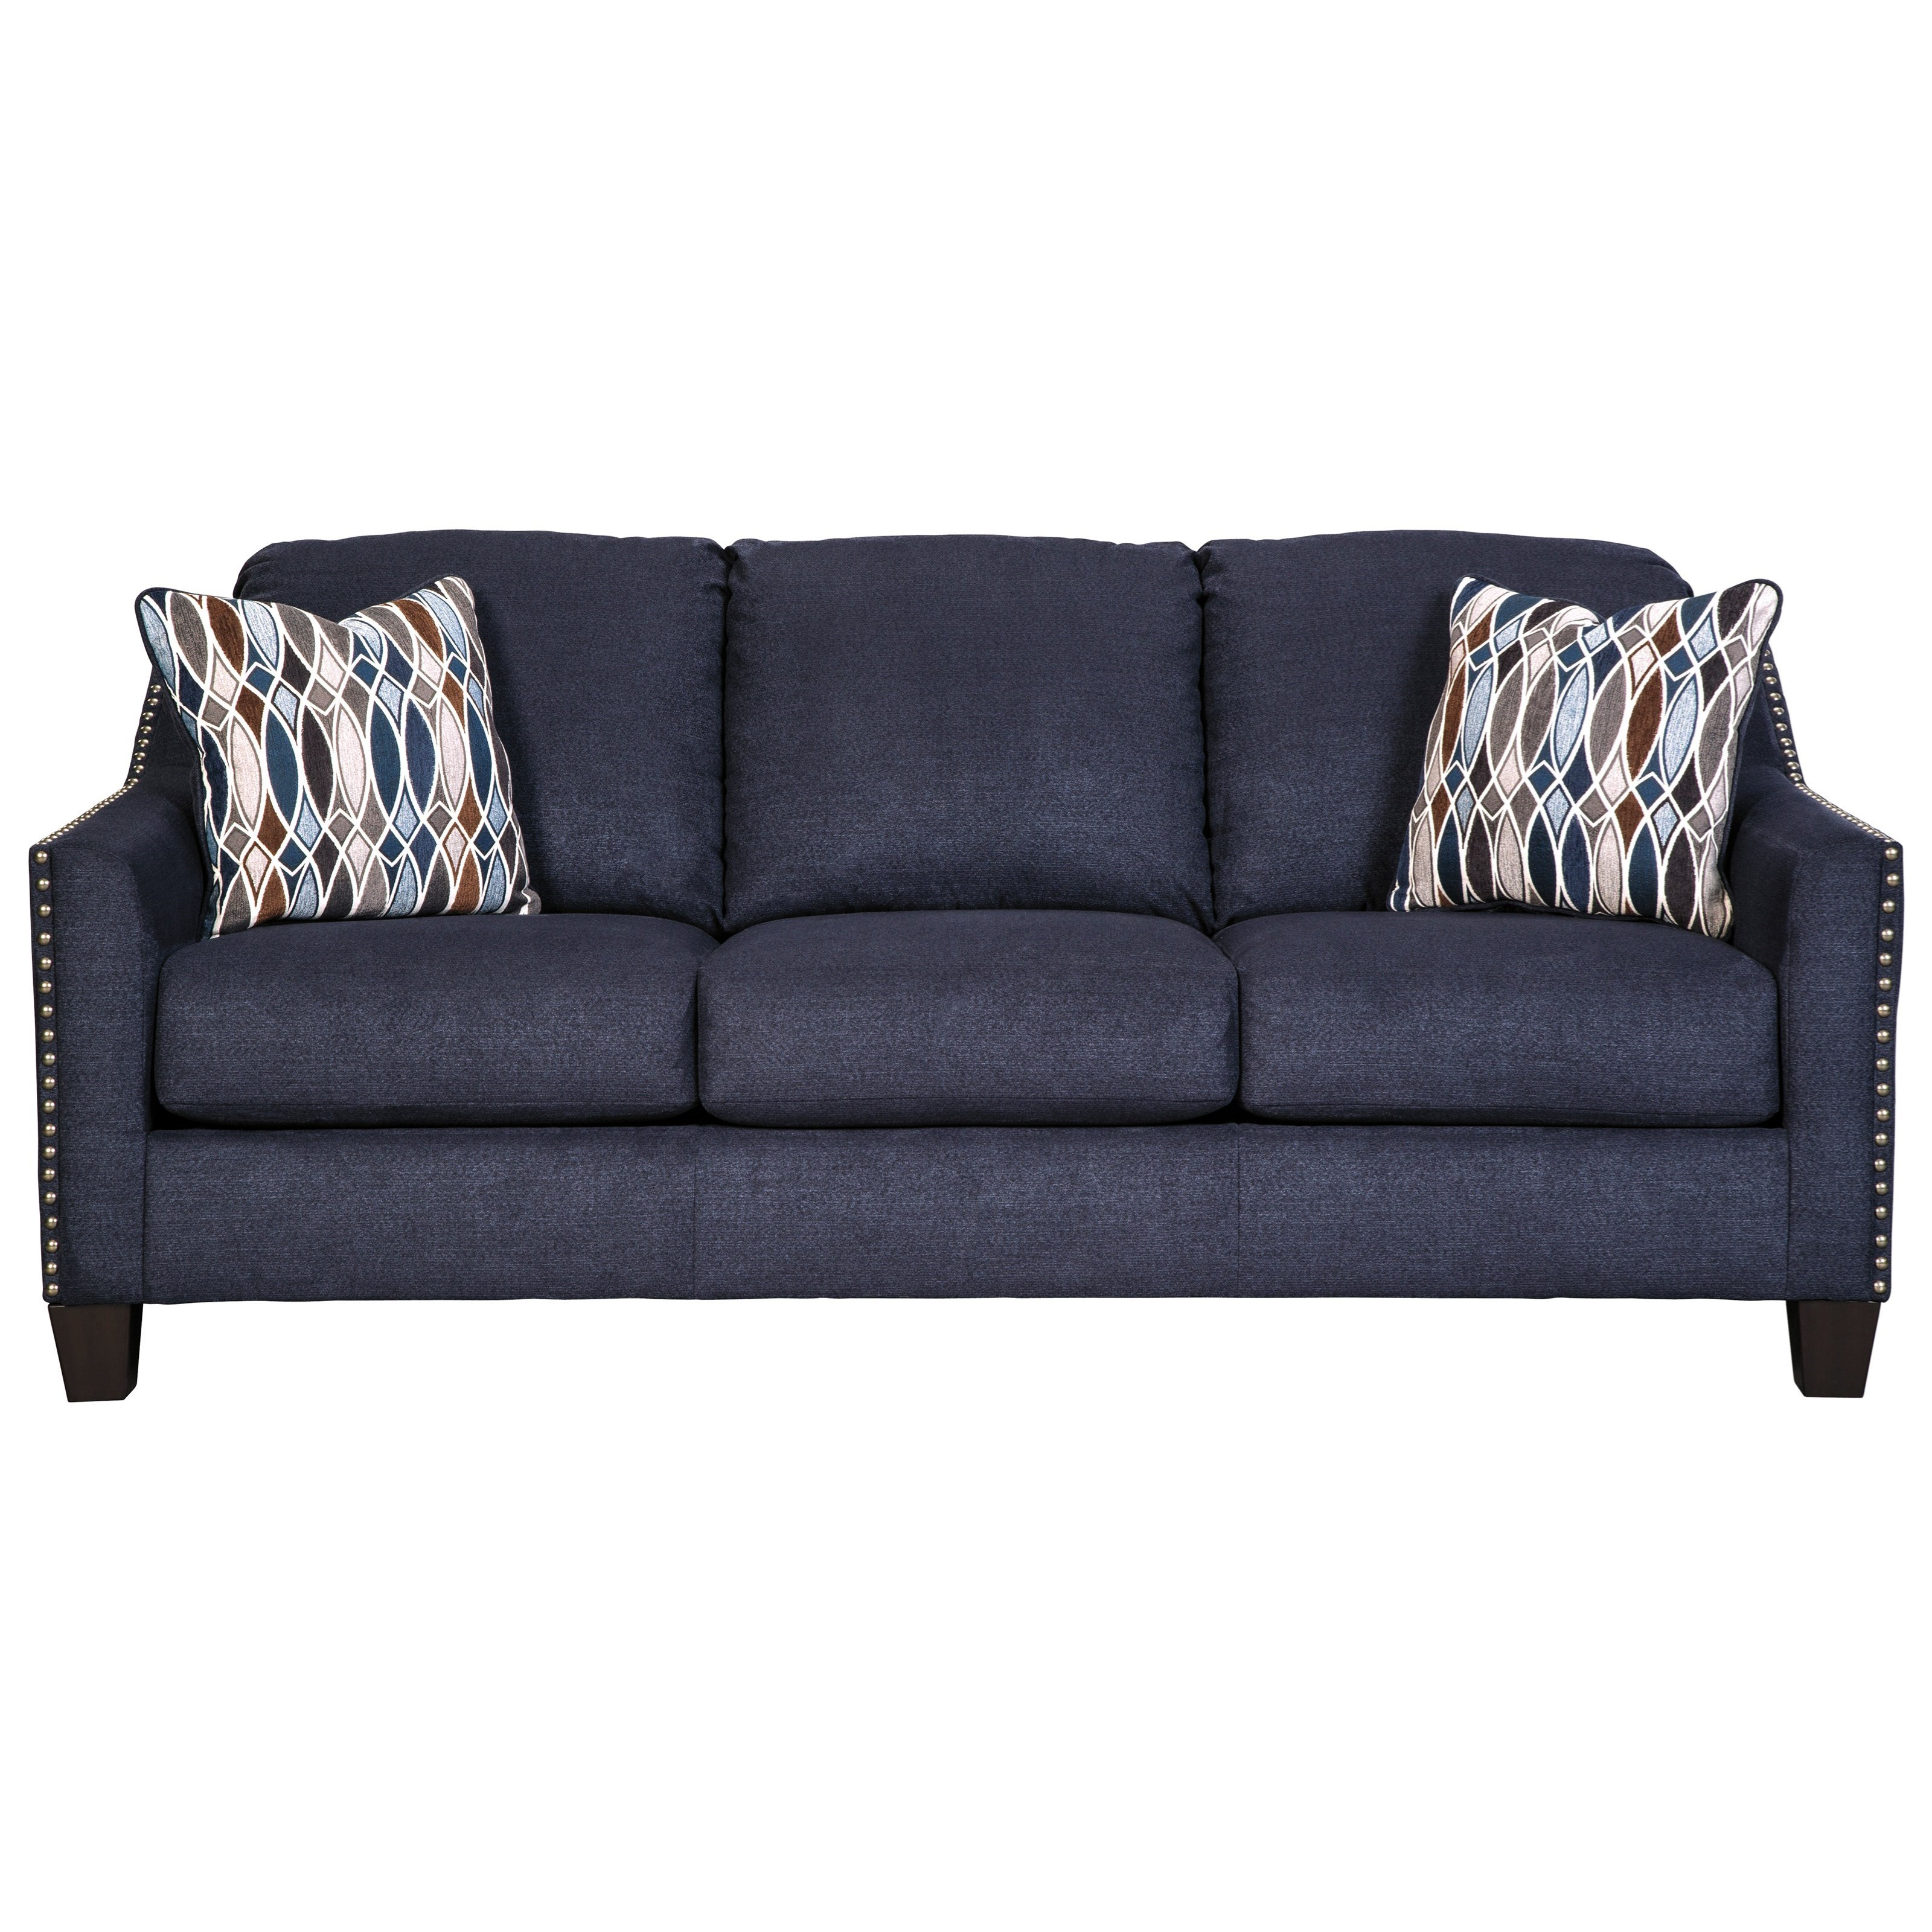 Creeal Heights Sofa by Benchcraft at Walker's Furniture